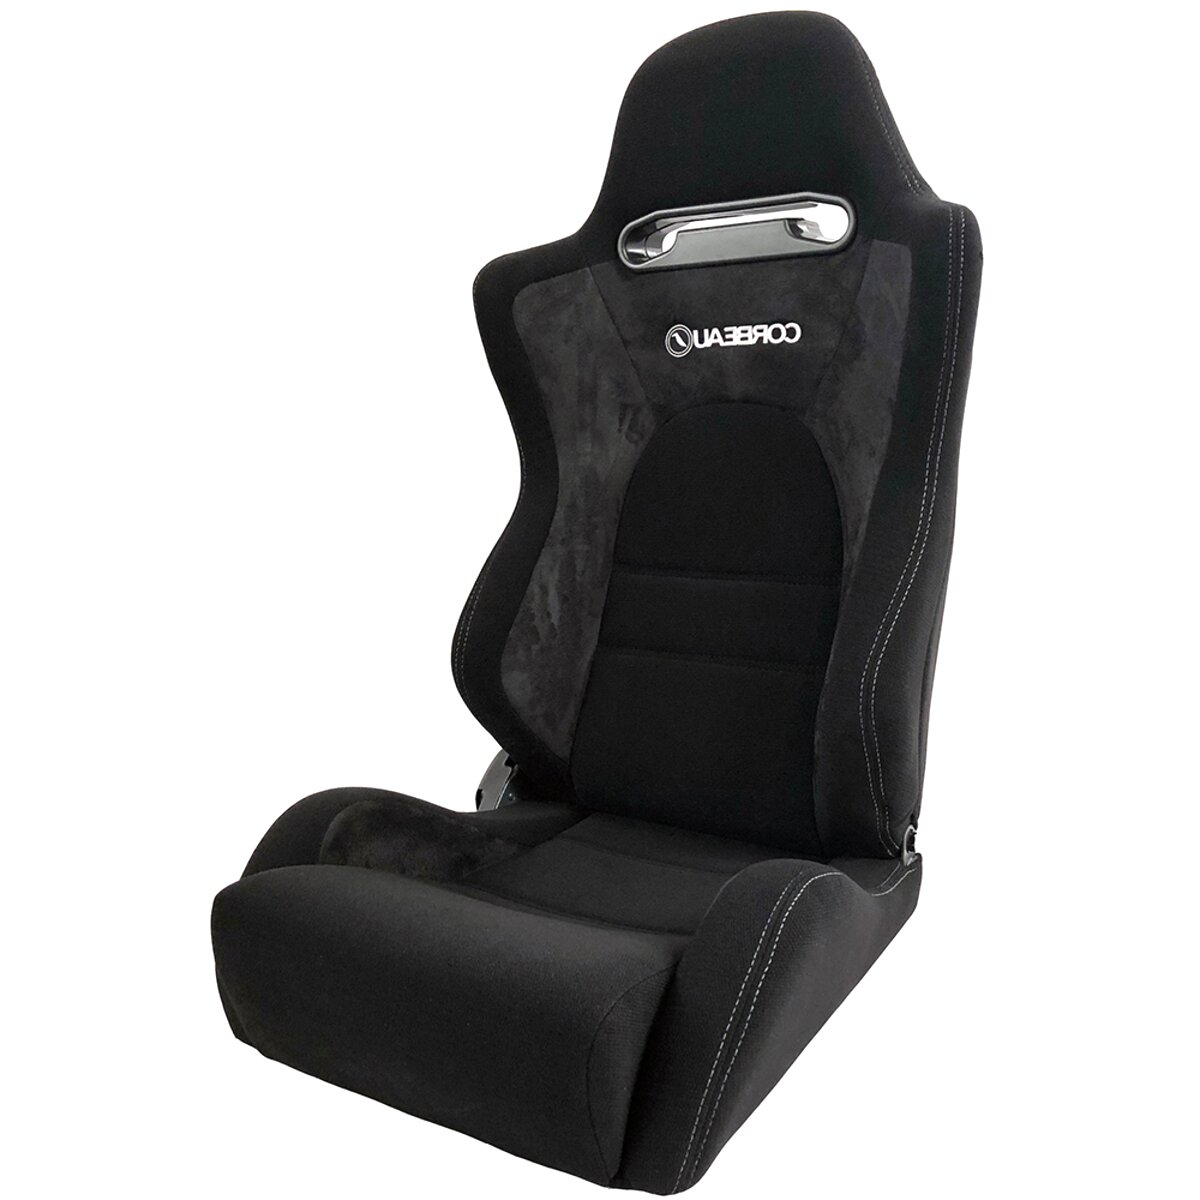 Reclinning Bucket Seats For Sale In Uk View 62 Bargains